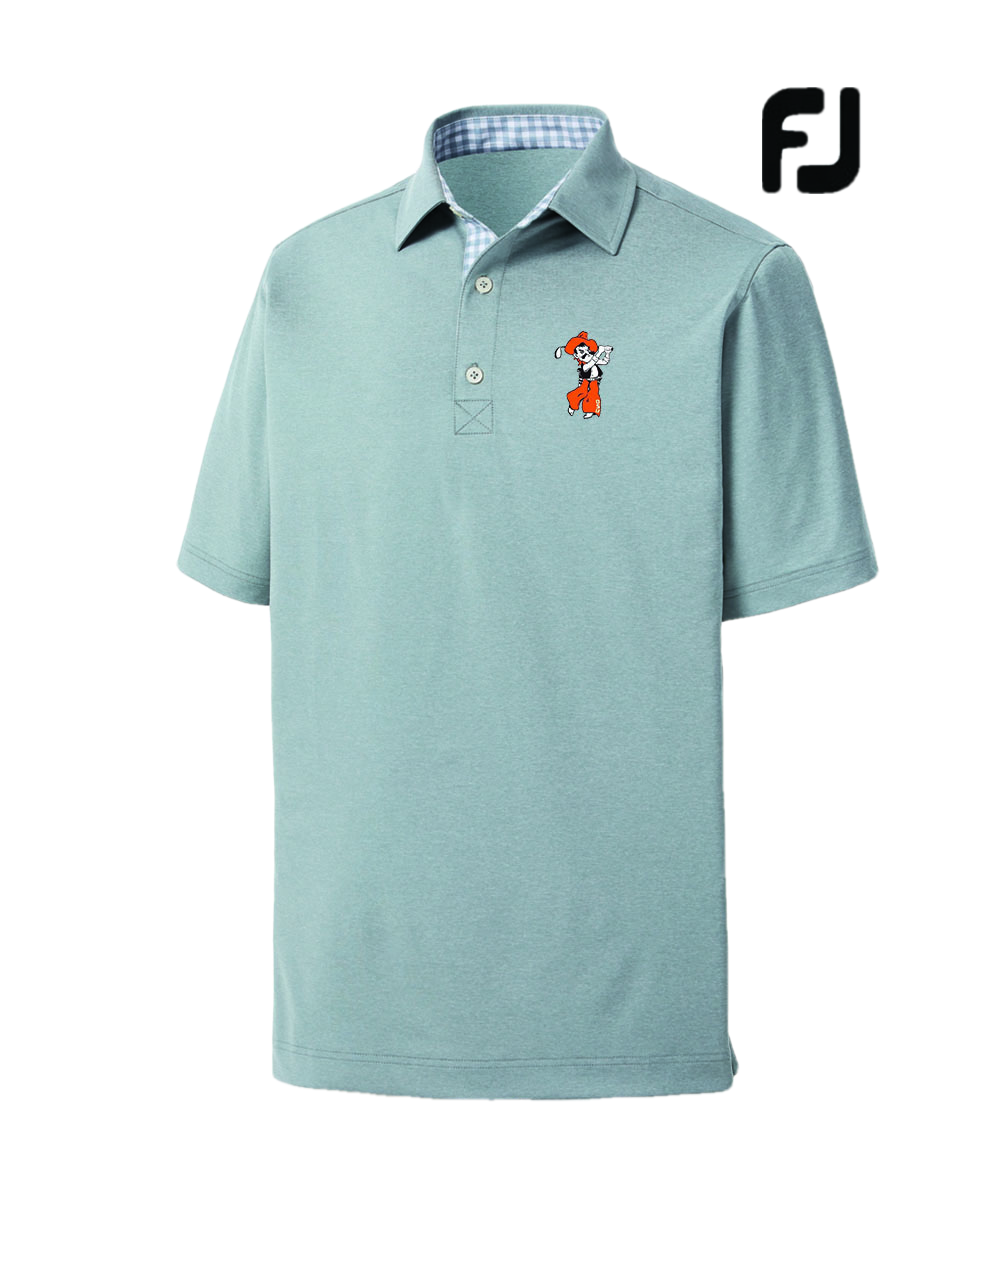 FootJoy Athletic Fit Lisle Solid Gingham Polo